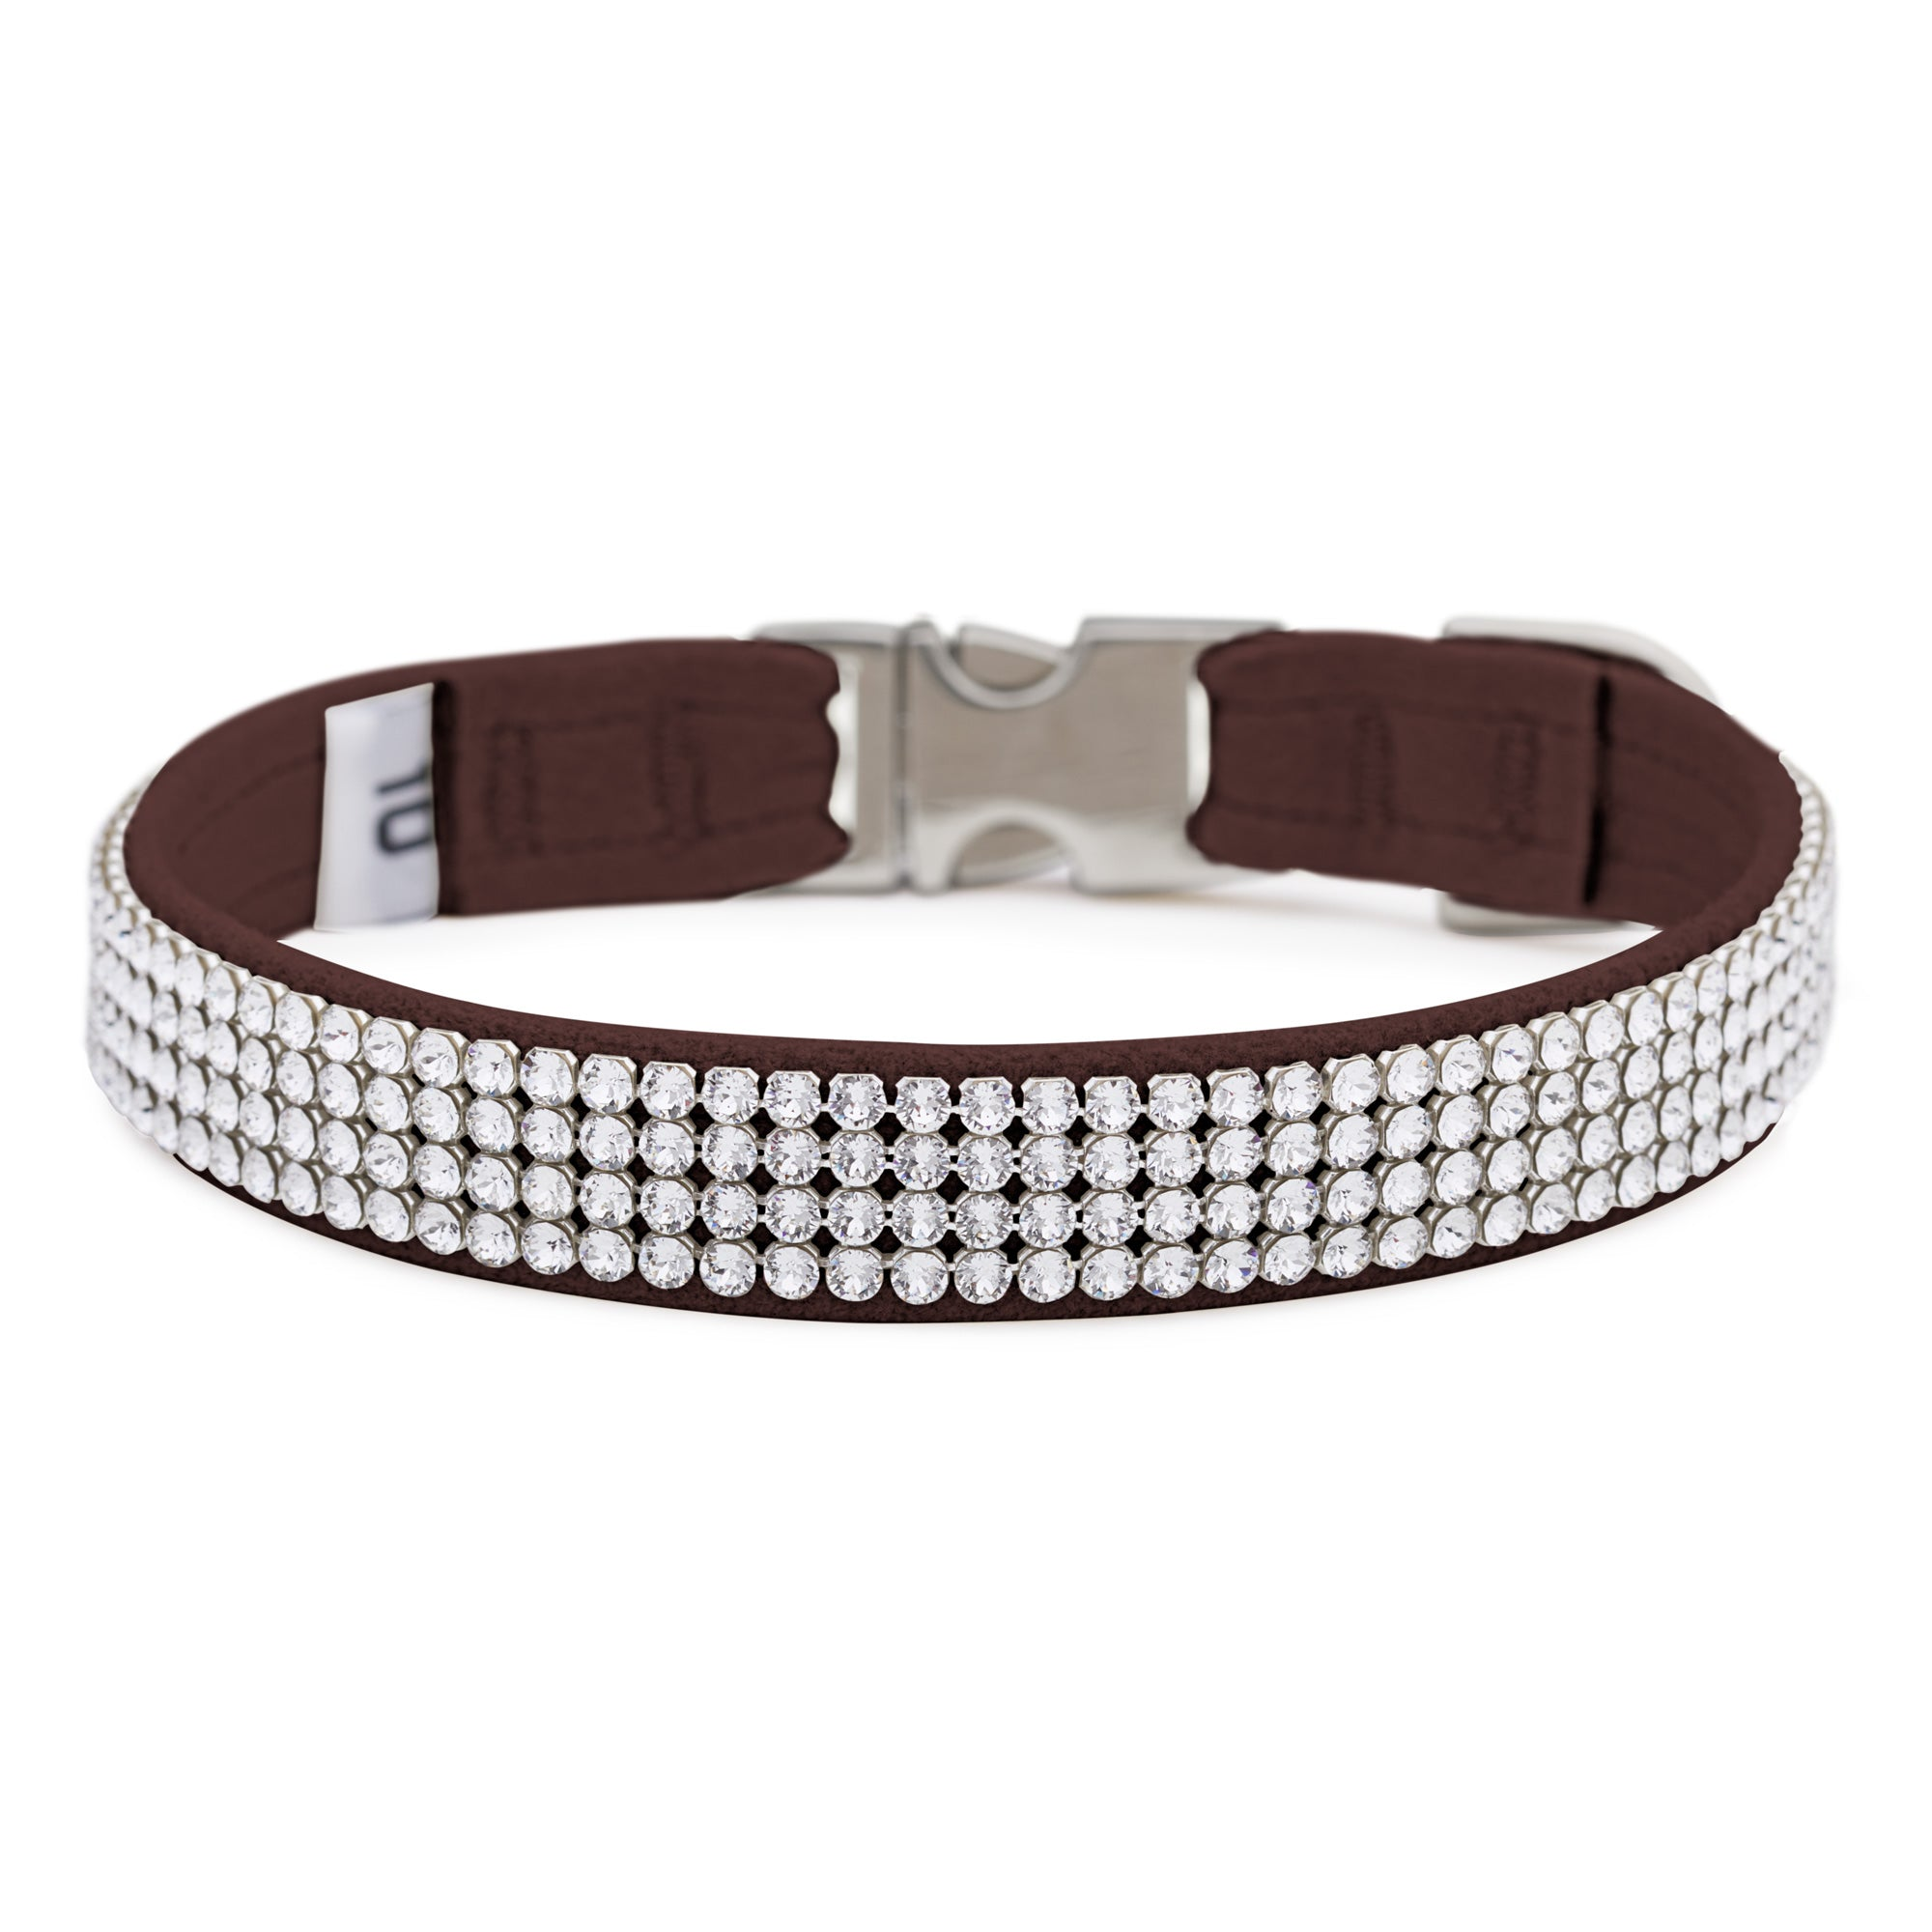 Chocolate 4 Row Giltmore Perfect Fit Collar